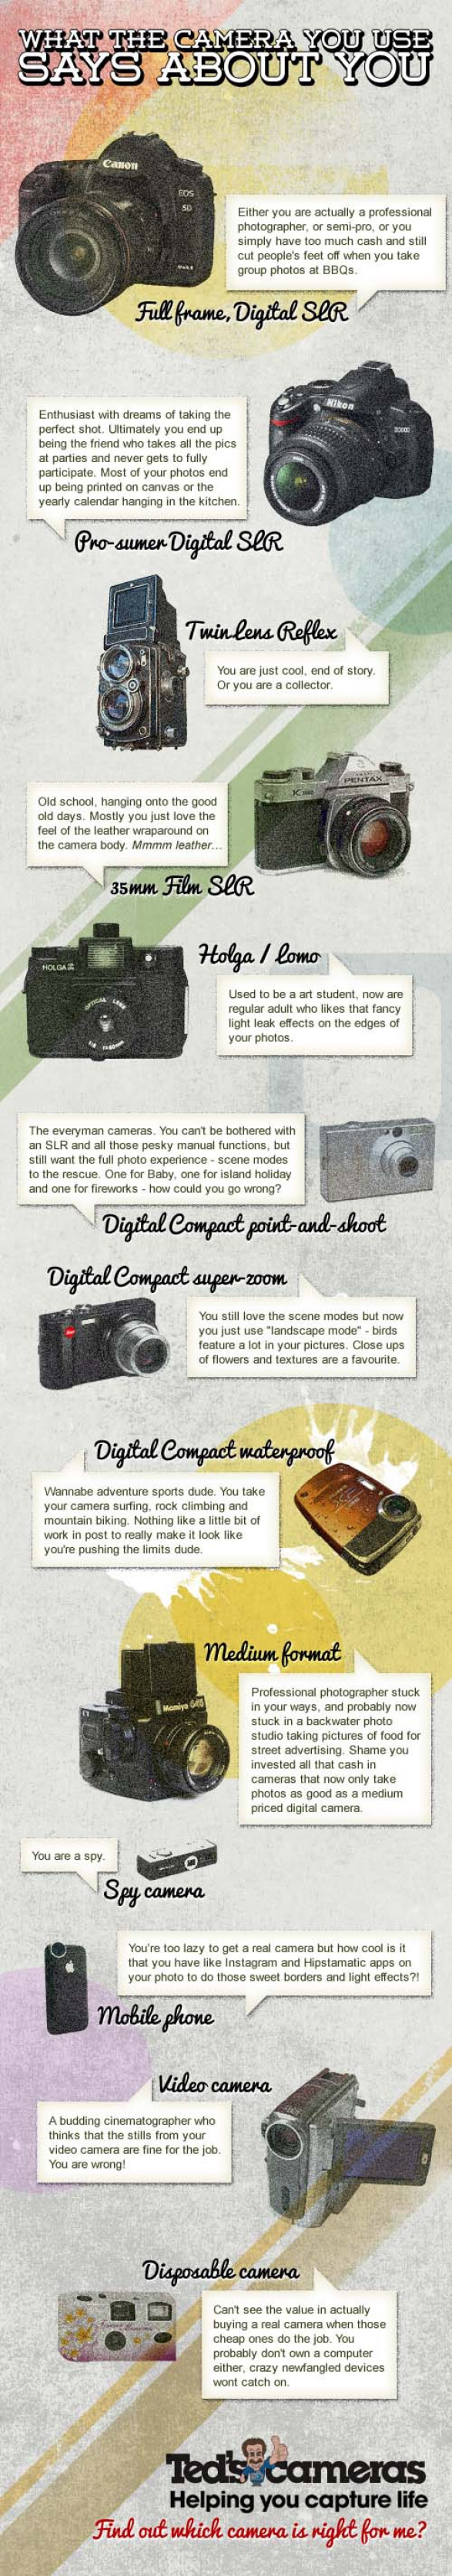 What does your camera say about you?